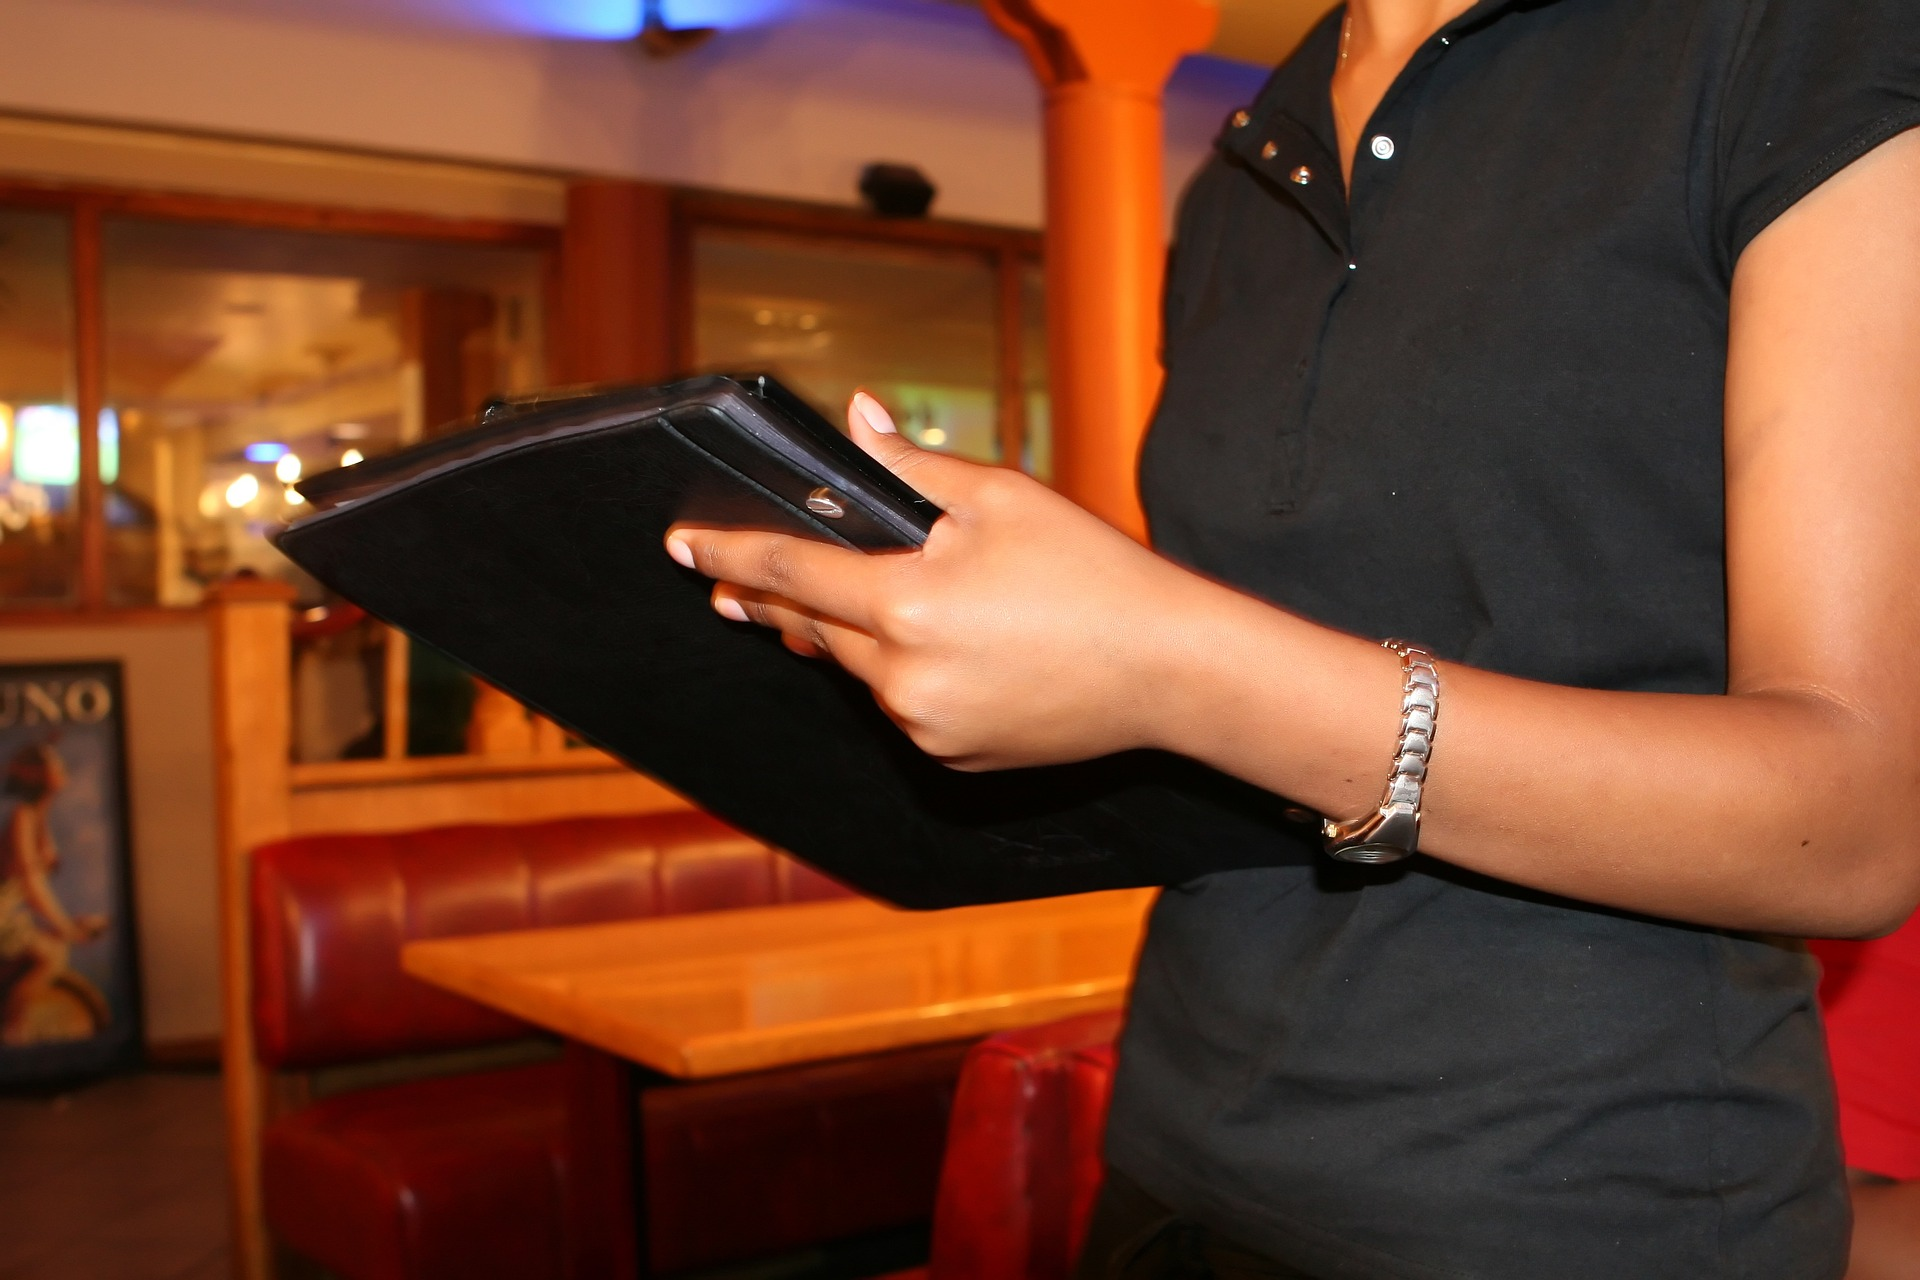 RESTAURANT WORKERS PUSH BACK